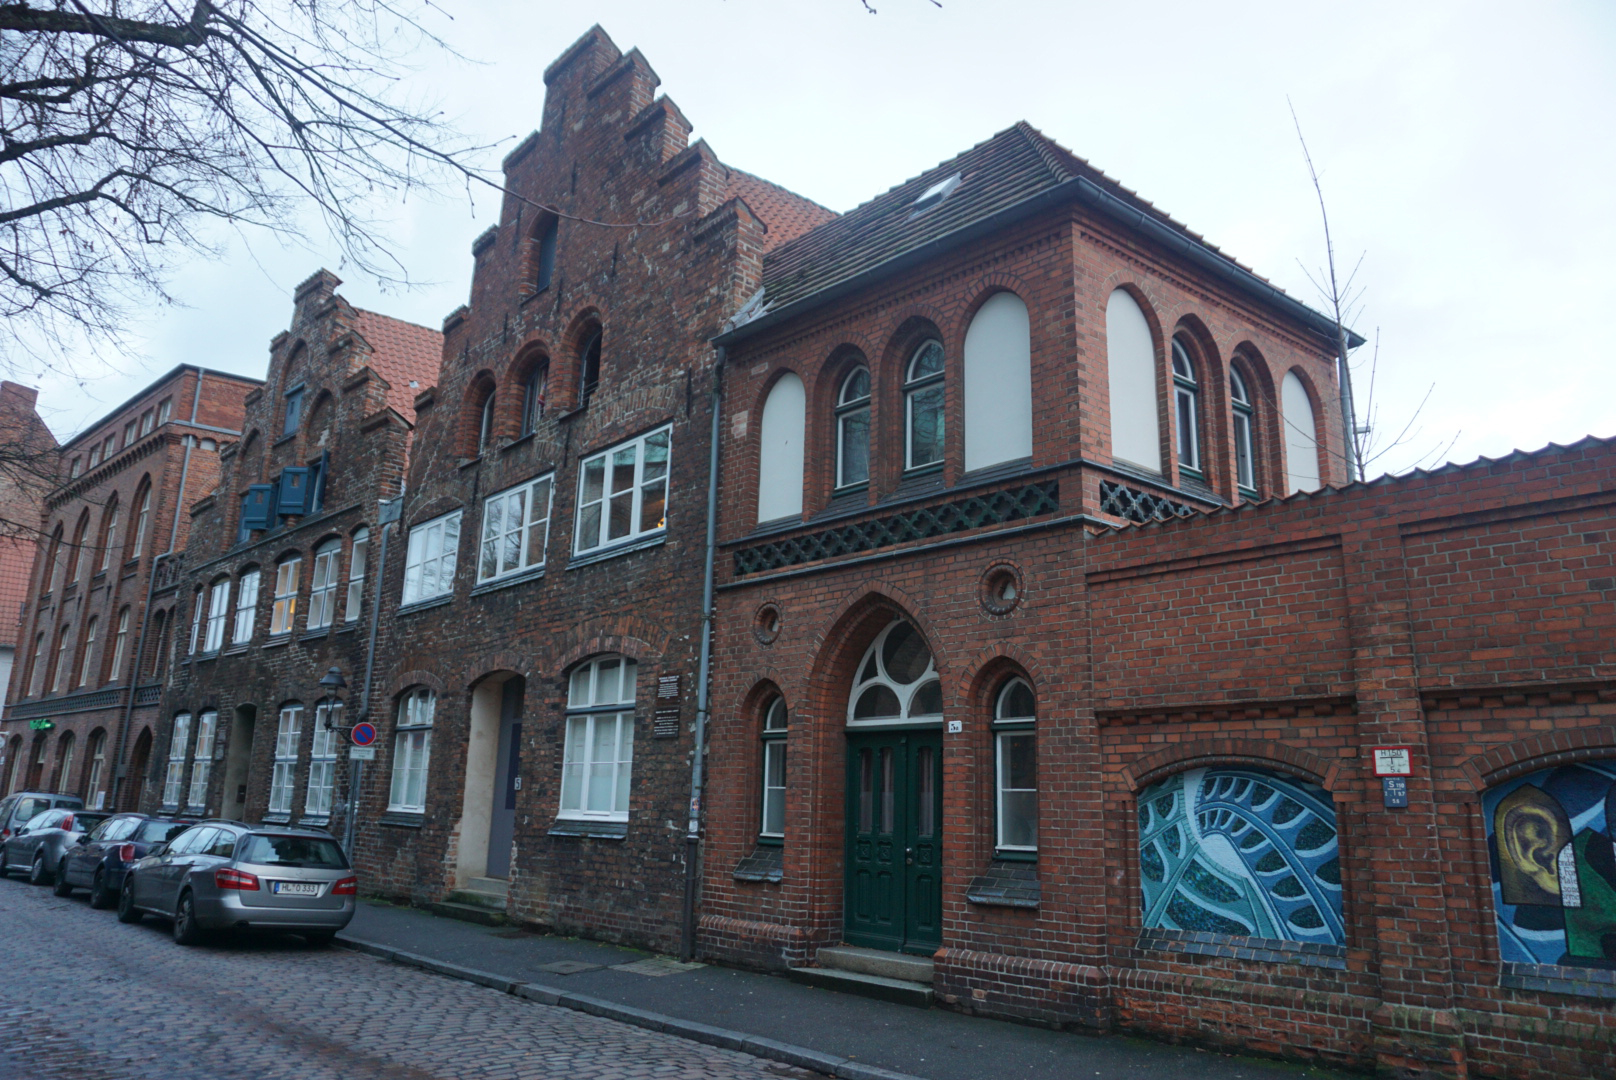 Typical Lübeck old city architecture